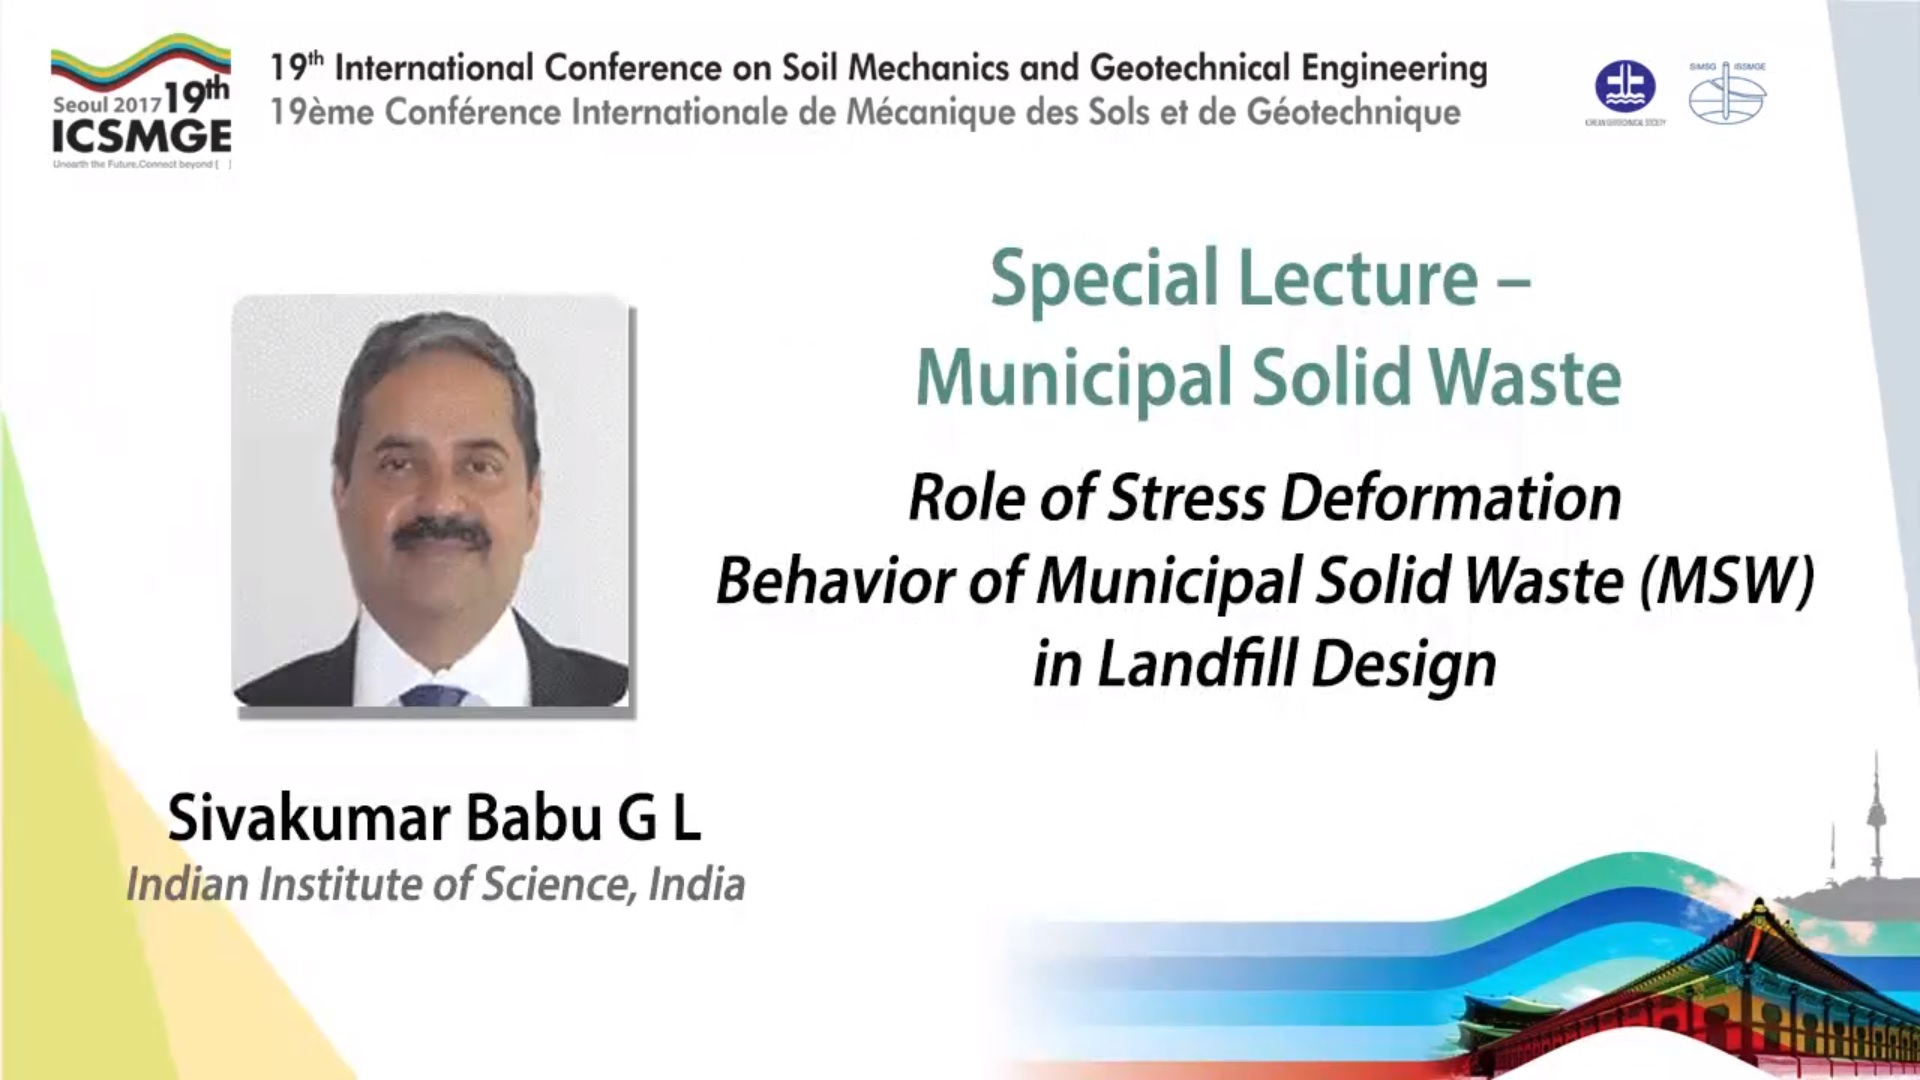 "Role of Stress Deformation Behavior of Municipal Solid Waste (MSW) in Landfill Design (Municipal Soil Waste Special Lecture - 19th ICSMGE) {""category"":""honour_lecture"",""subjects"":[""Landfill Engineering""],""number"":""ICSMGE19108"",""instructors"":[""Sivakumar Babu G L""]}"